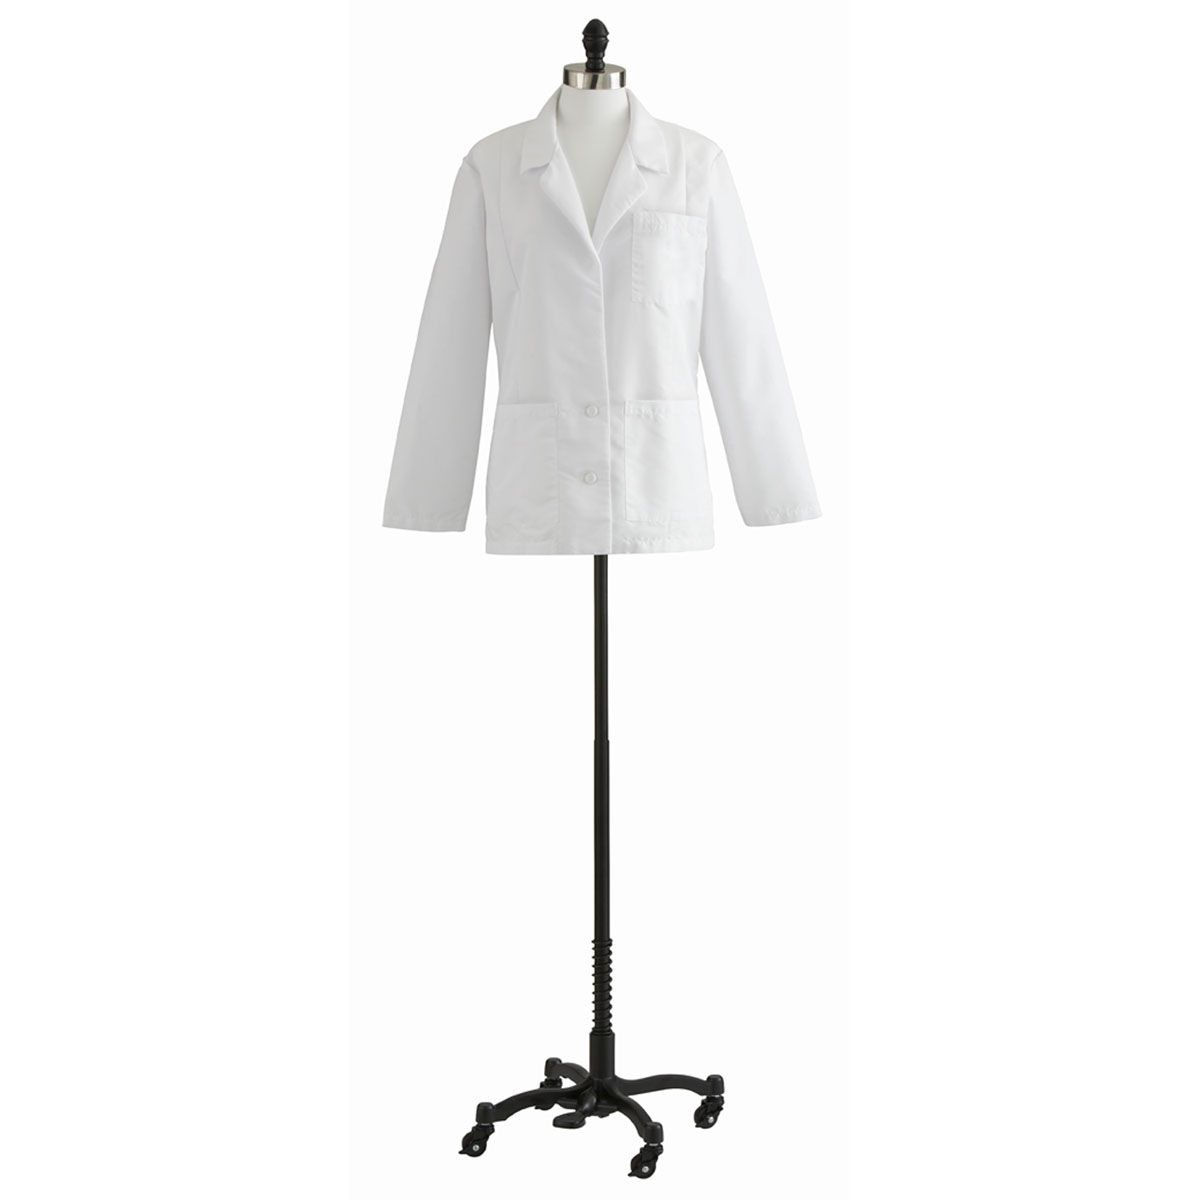 Medline Ladies Consultation Coat - White, 16, Each - Model 88018QHW16